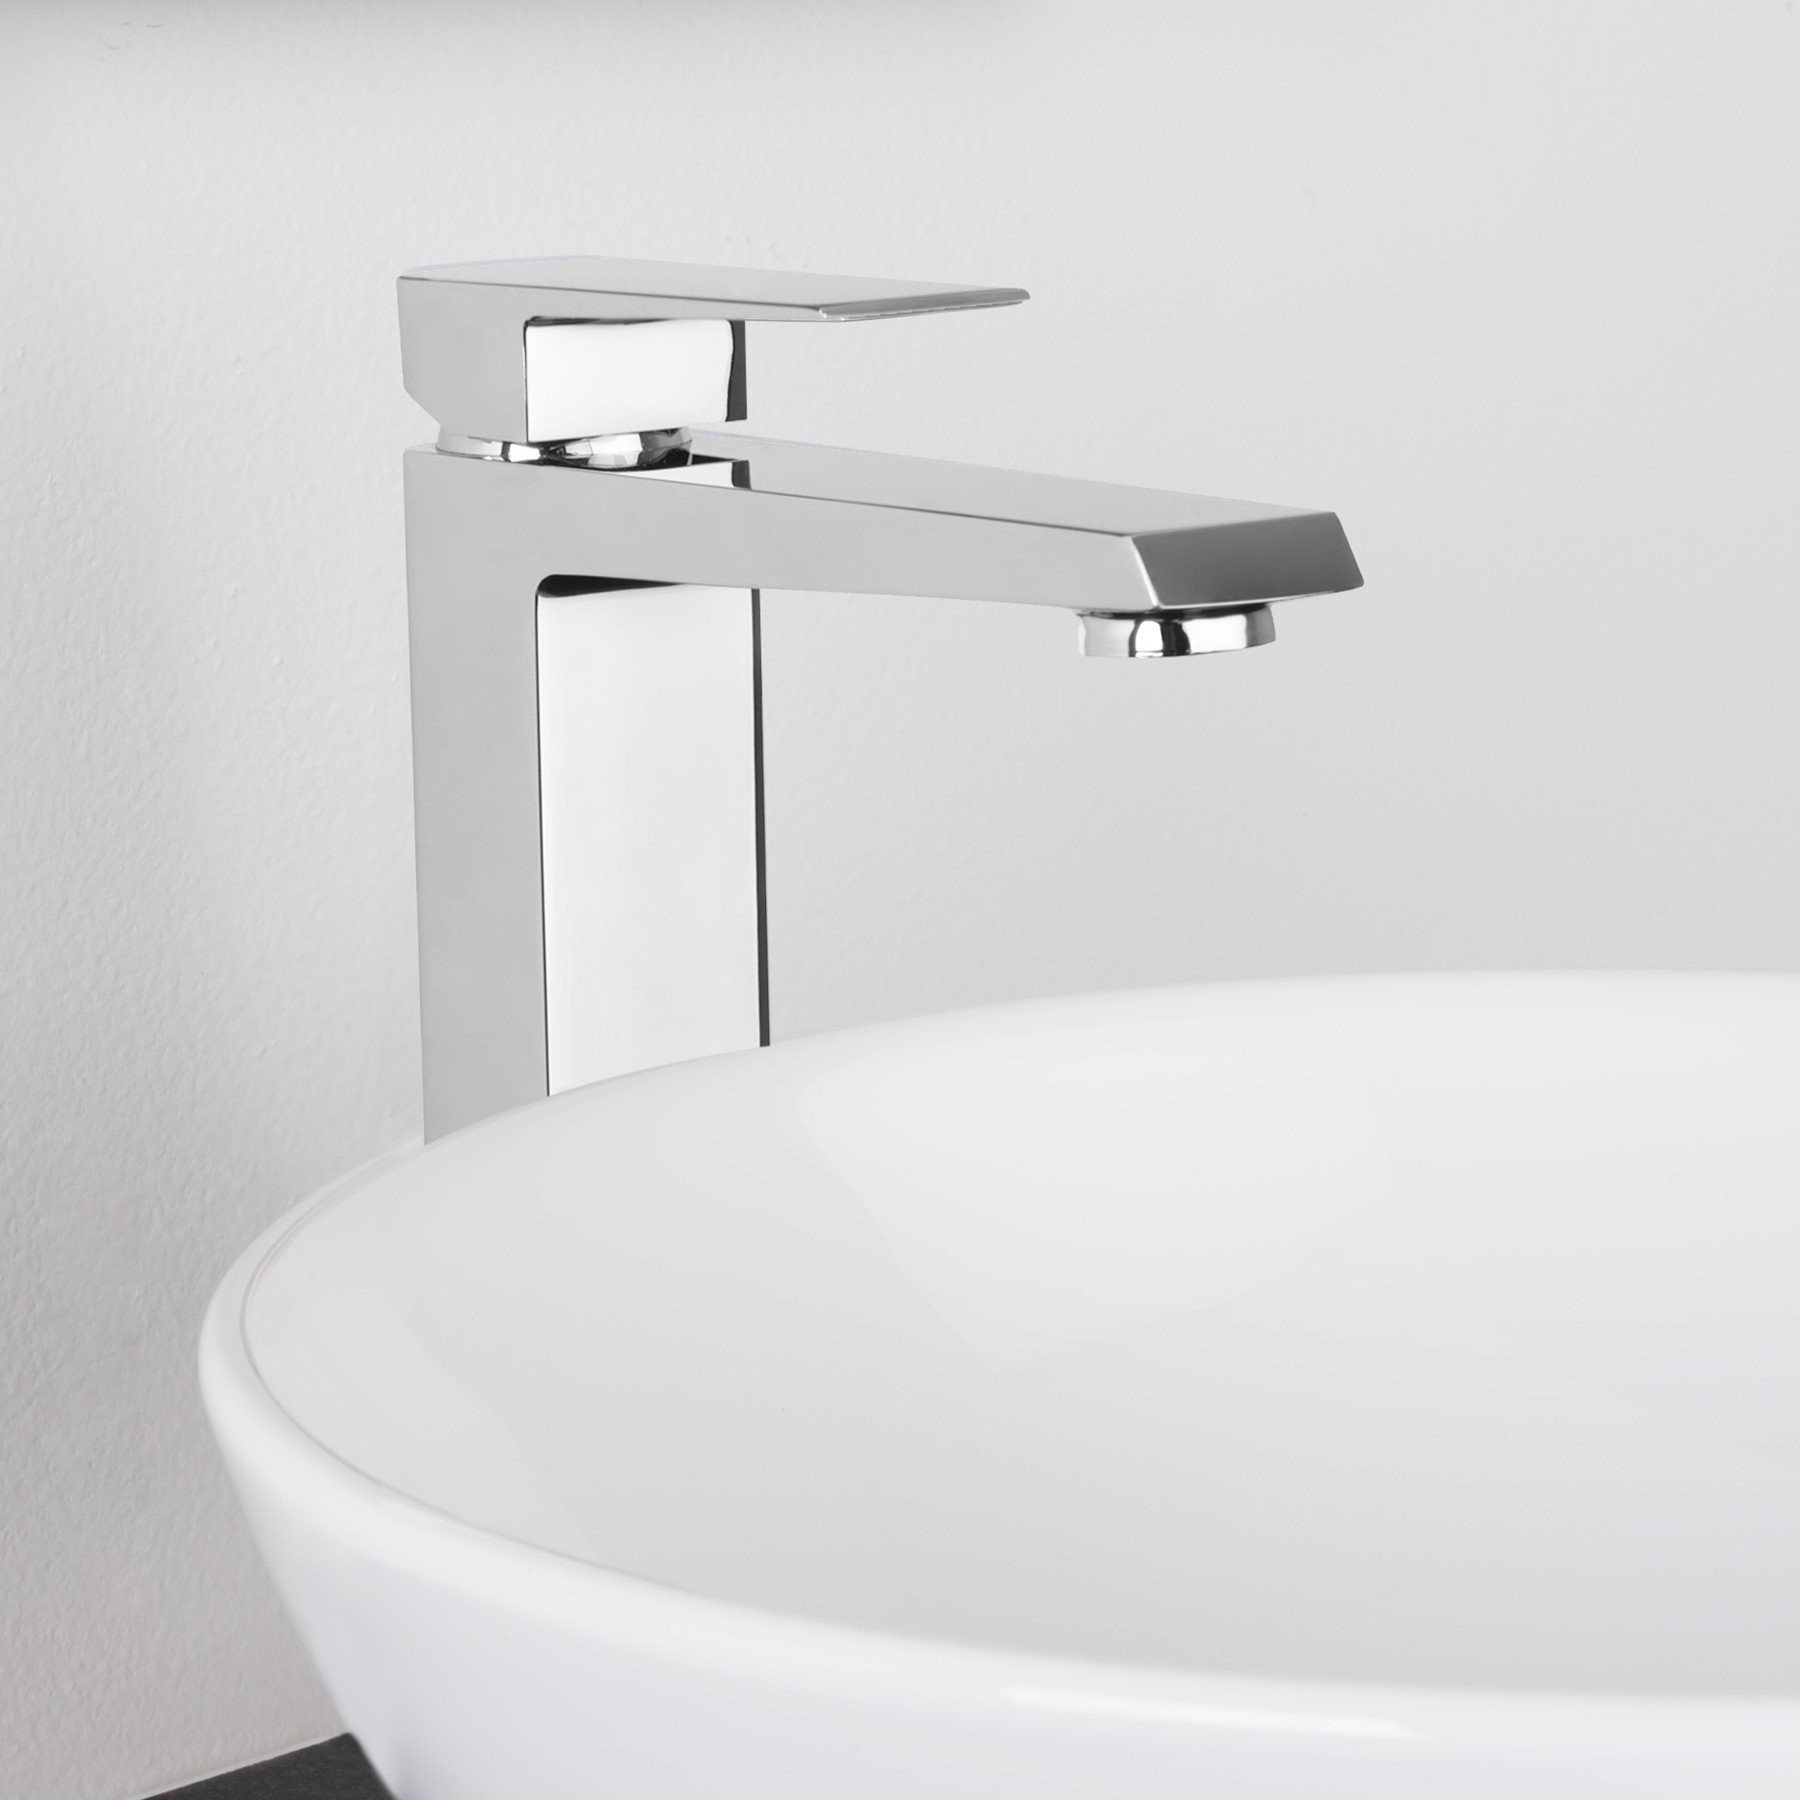 Augusta Brass Bathroom Vessel Sink Faucet, Single Hole, Single ...